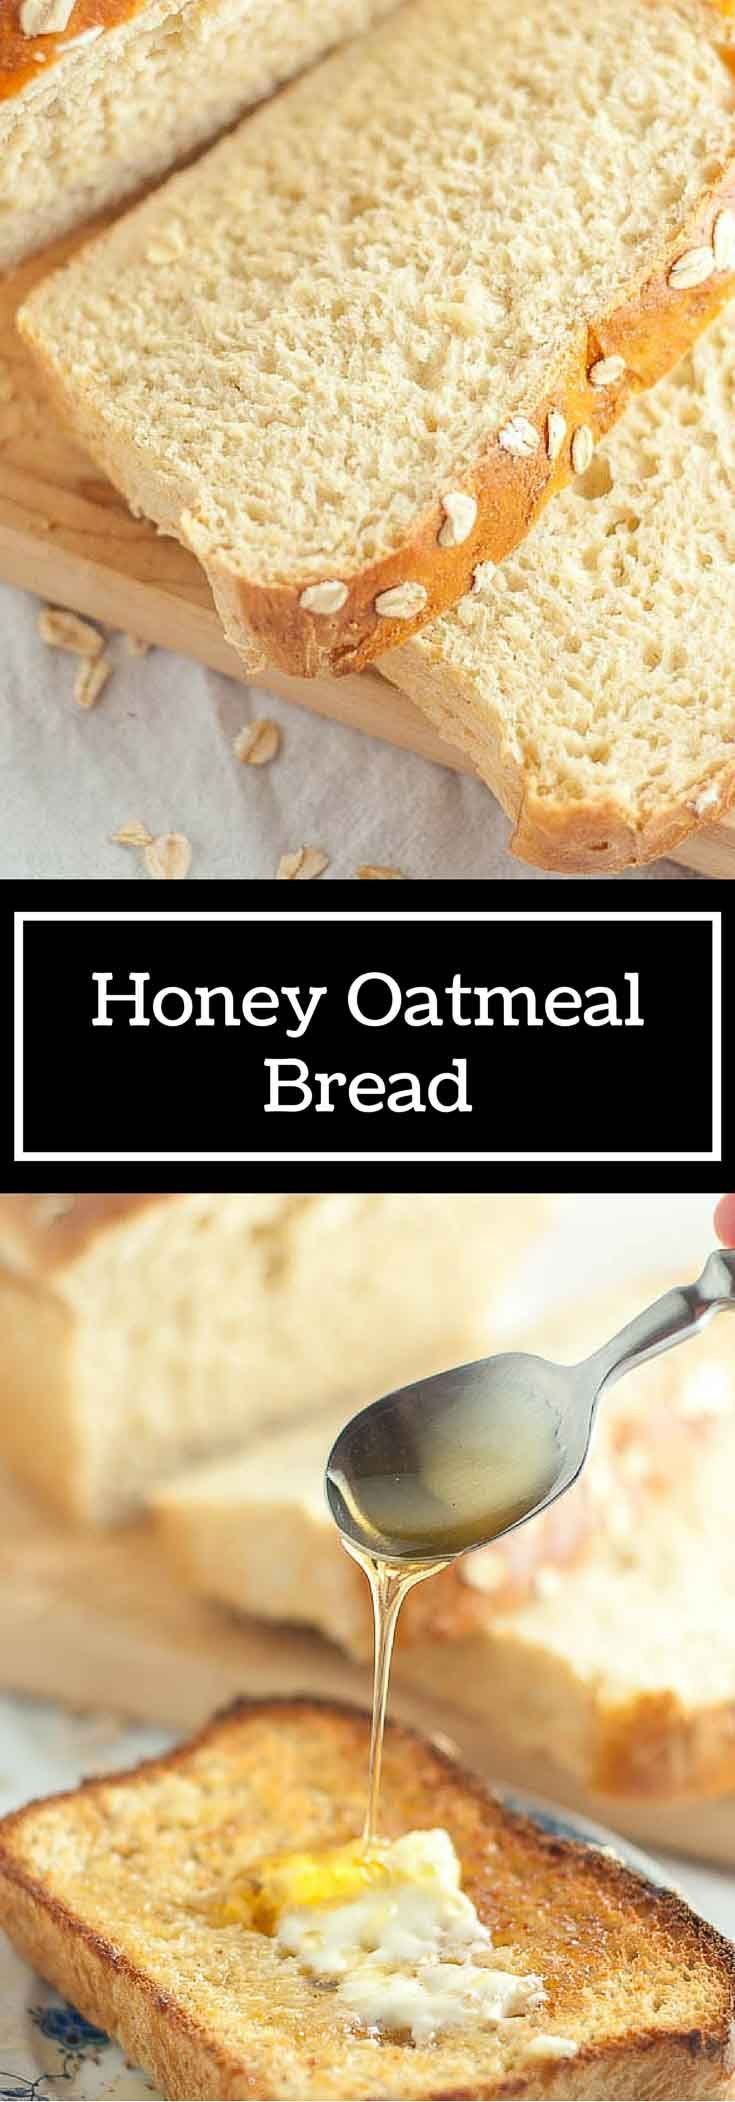 25+ best ideas about Honey bread on Pinterest